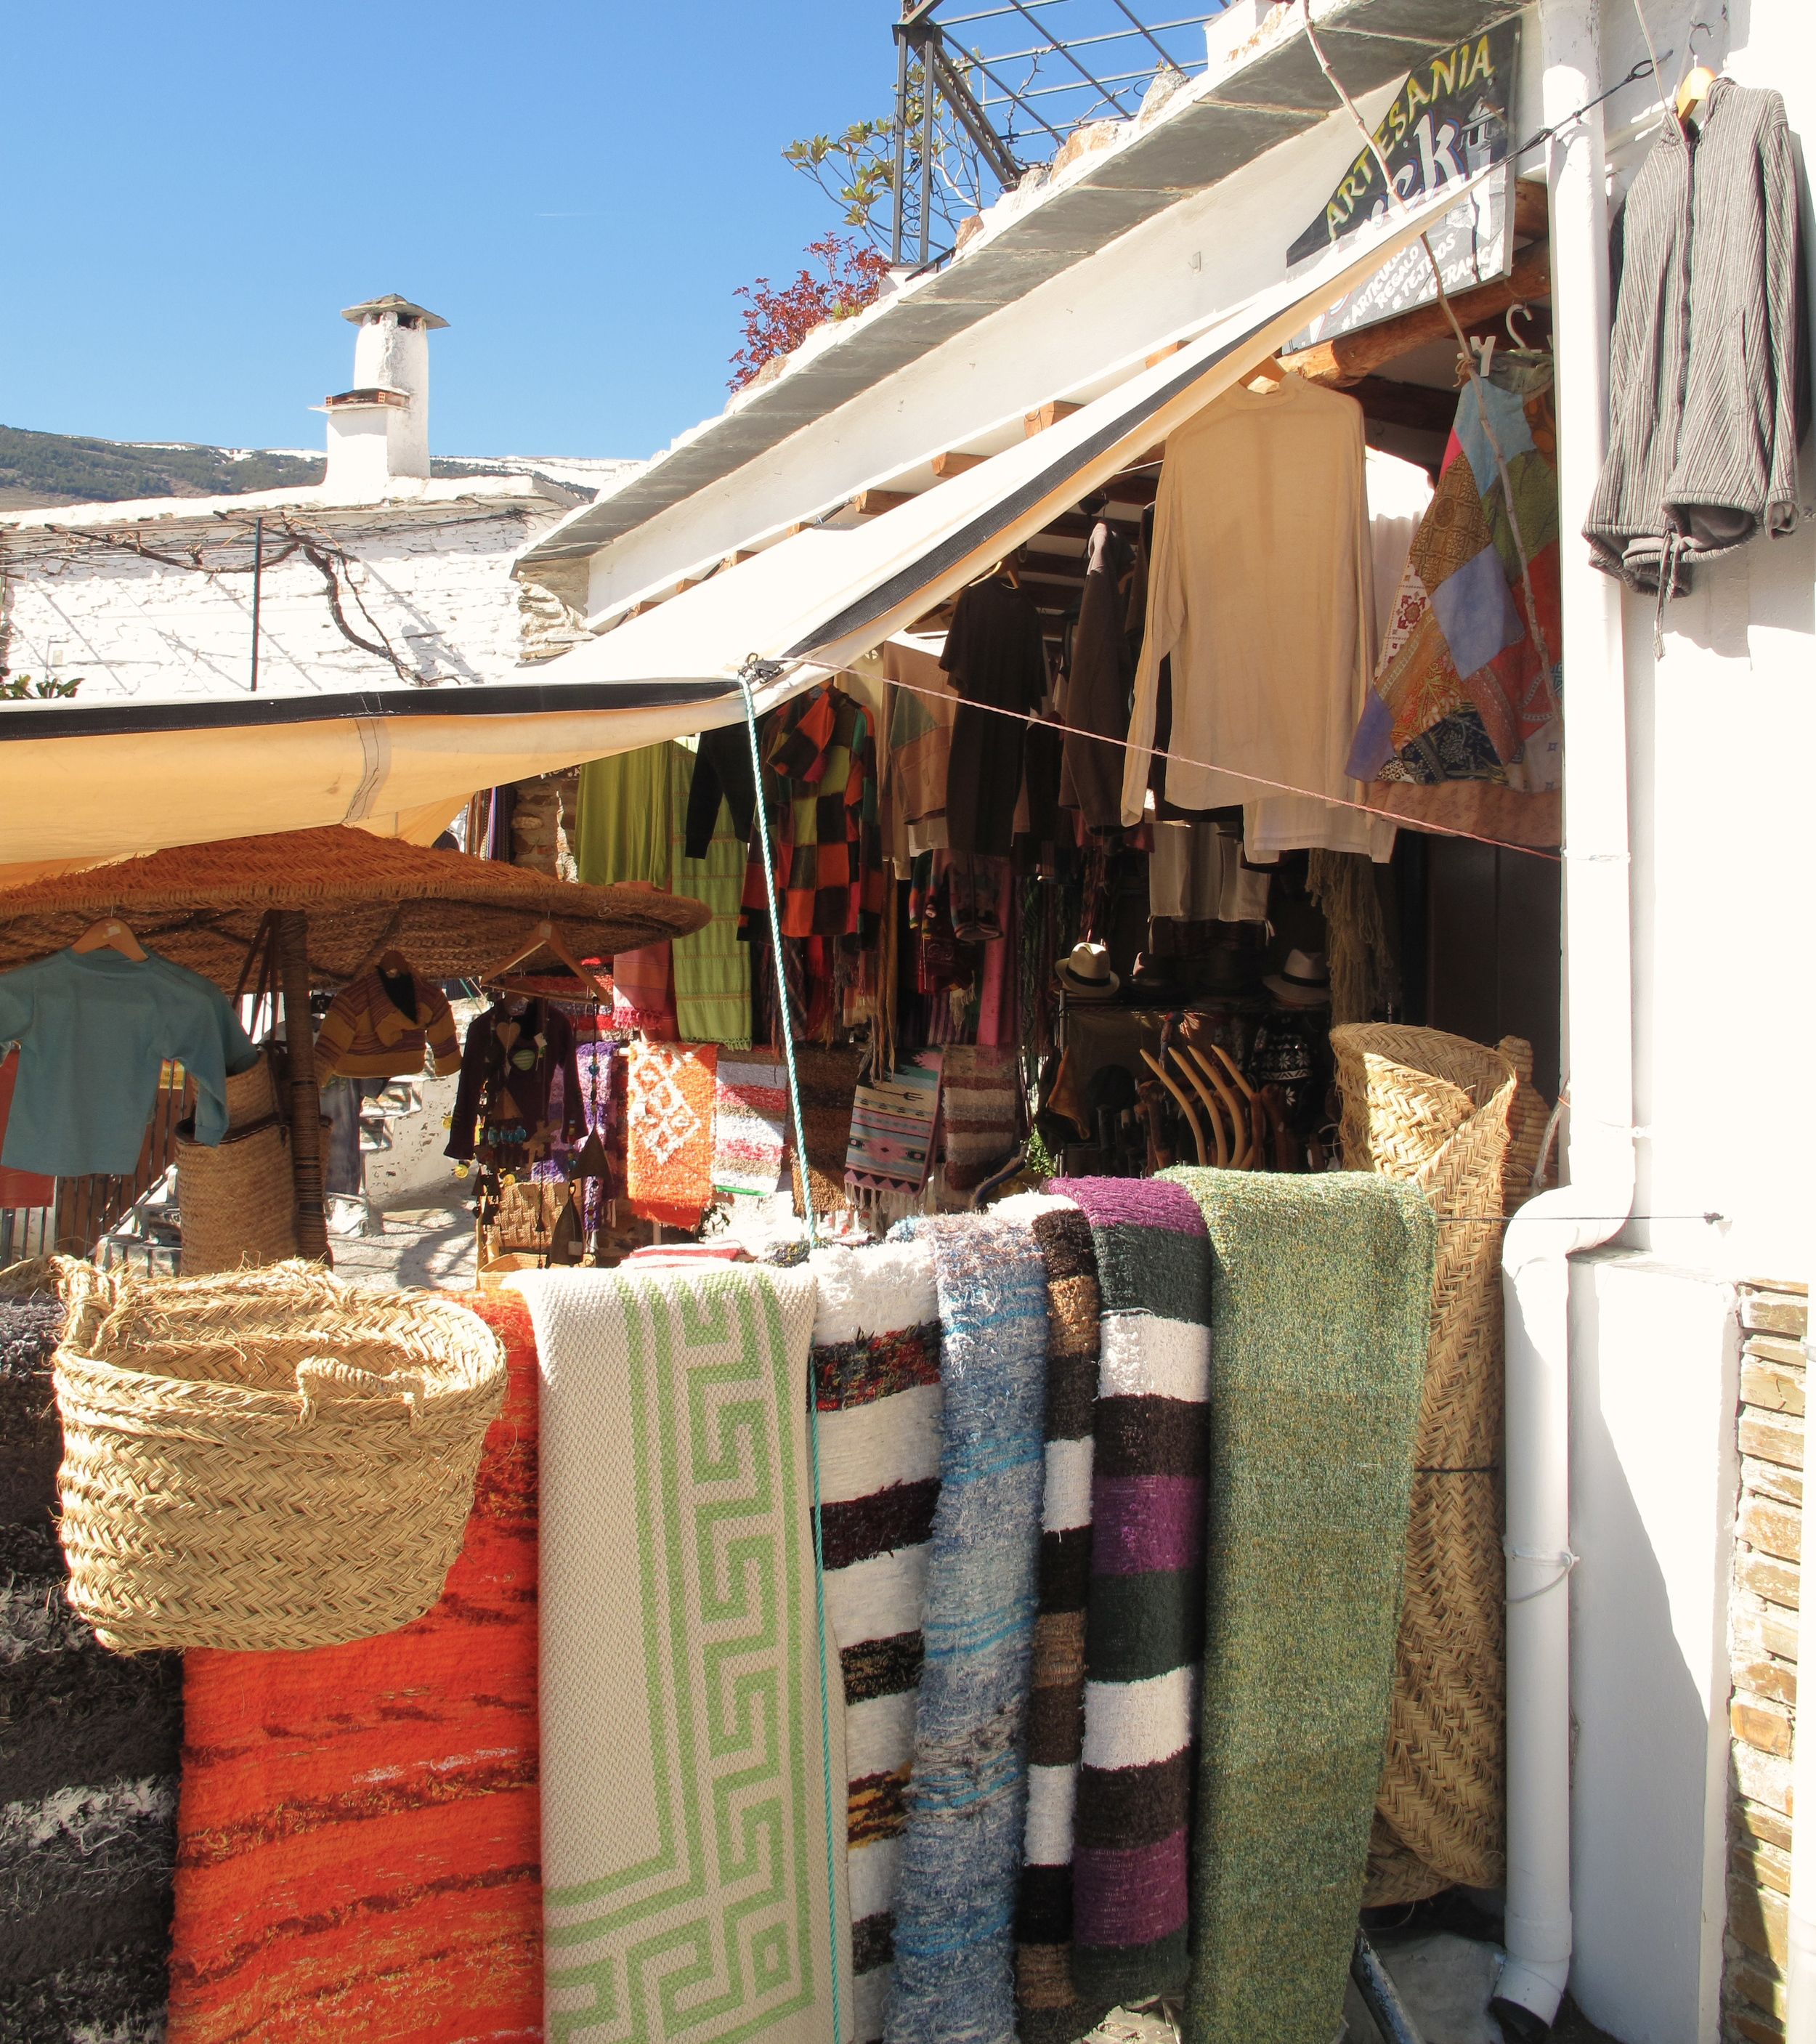 Purveyor of fine spanish mountain wares - carpets and painted chairs